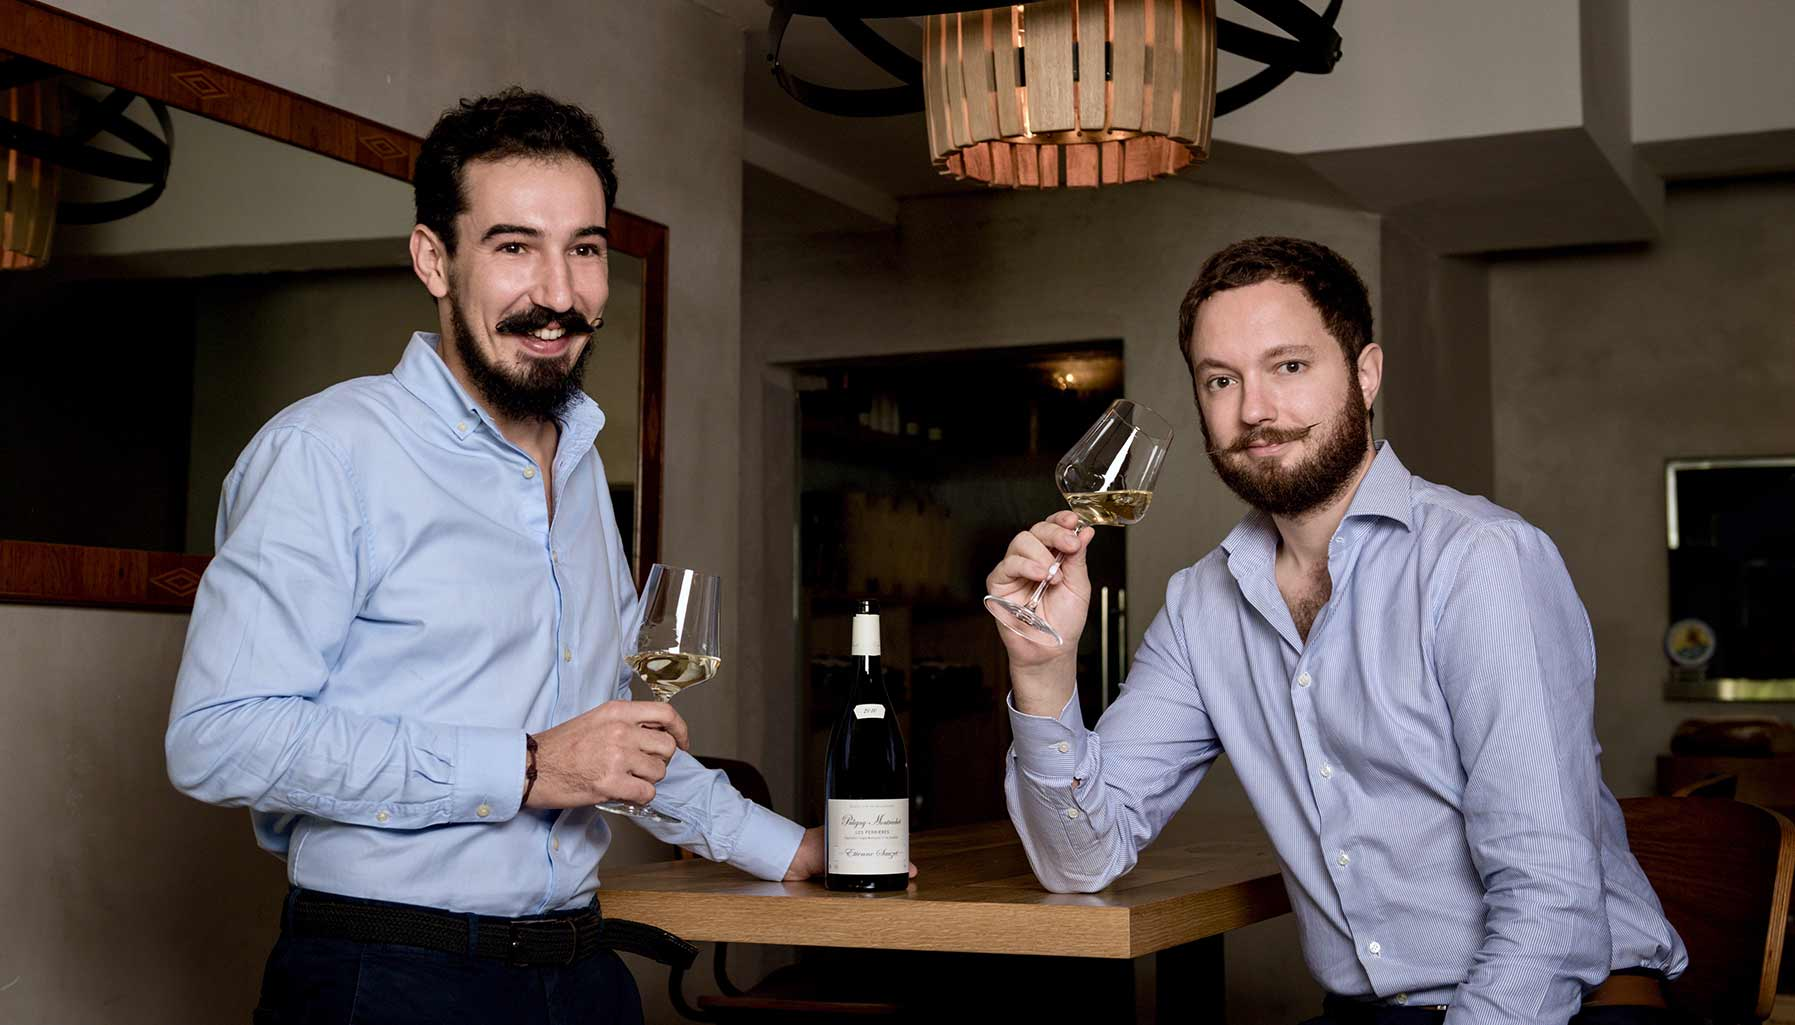 Ma Cuisine founders Anthony Charmetant and Mathieu Escoffier